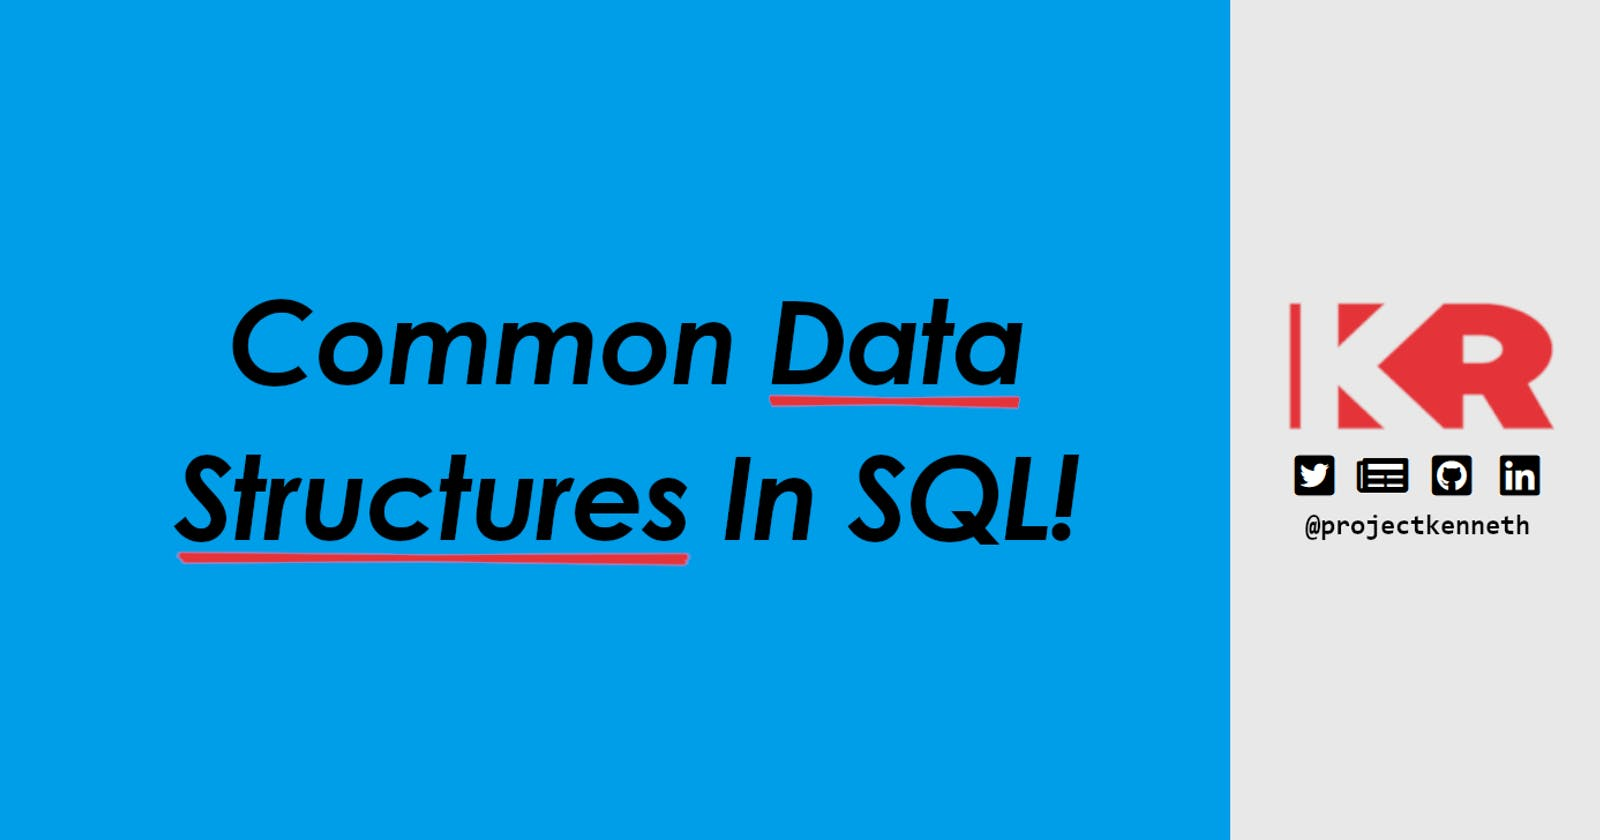 Representing Common Data Structures In SQL